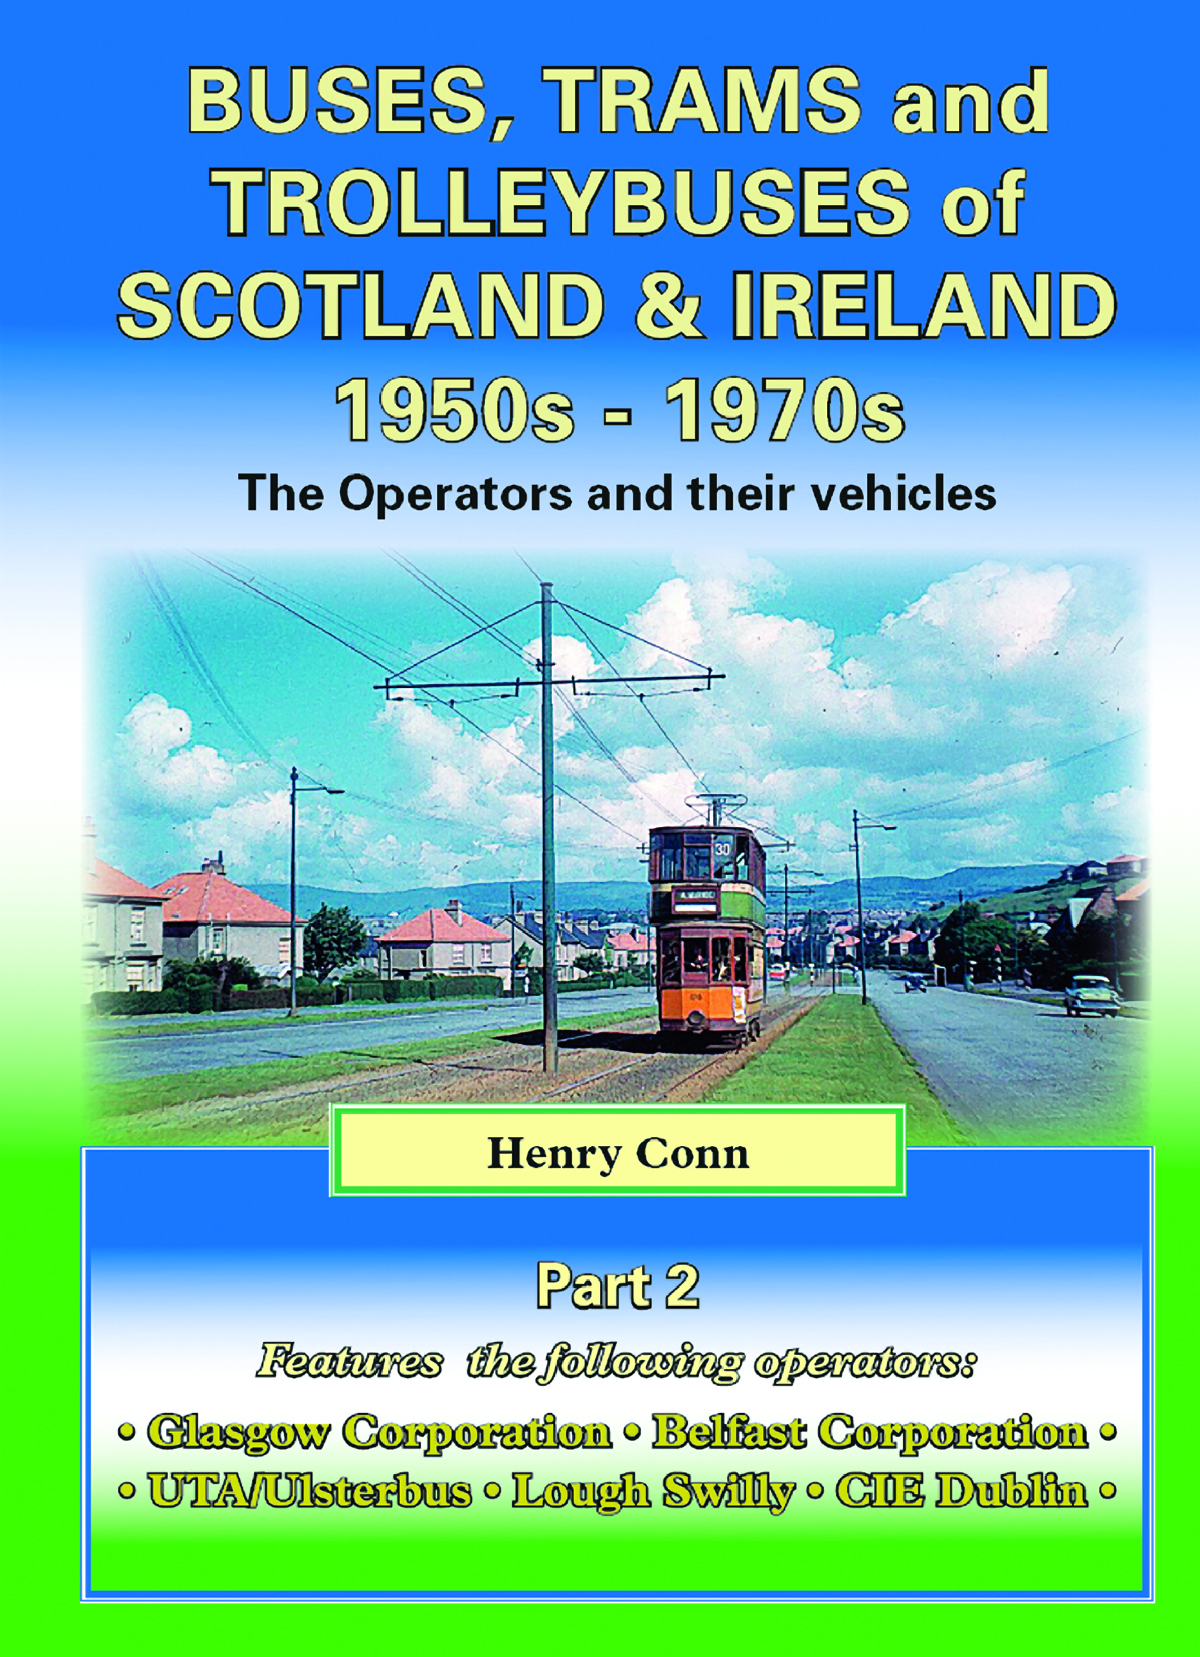 4013 - Buses & Trolleybuses of Scotland & Ireland Part 2: Non Cities